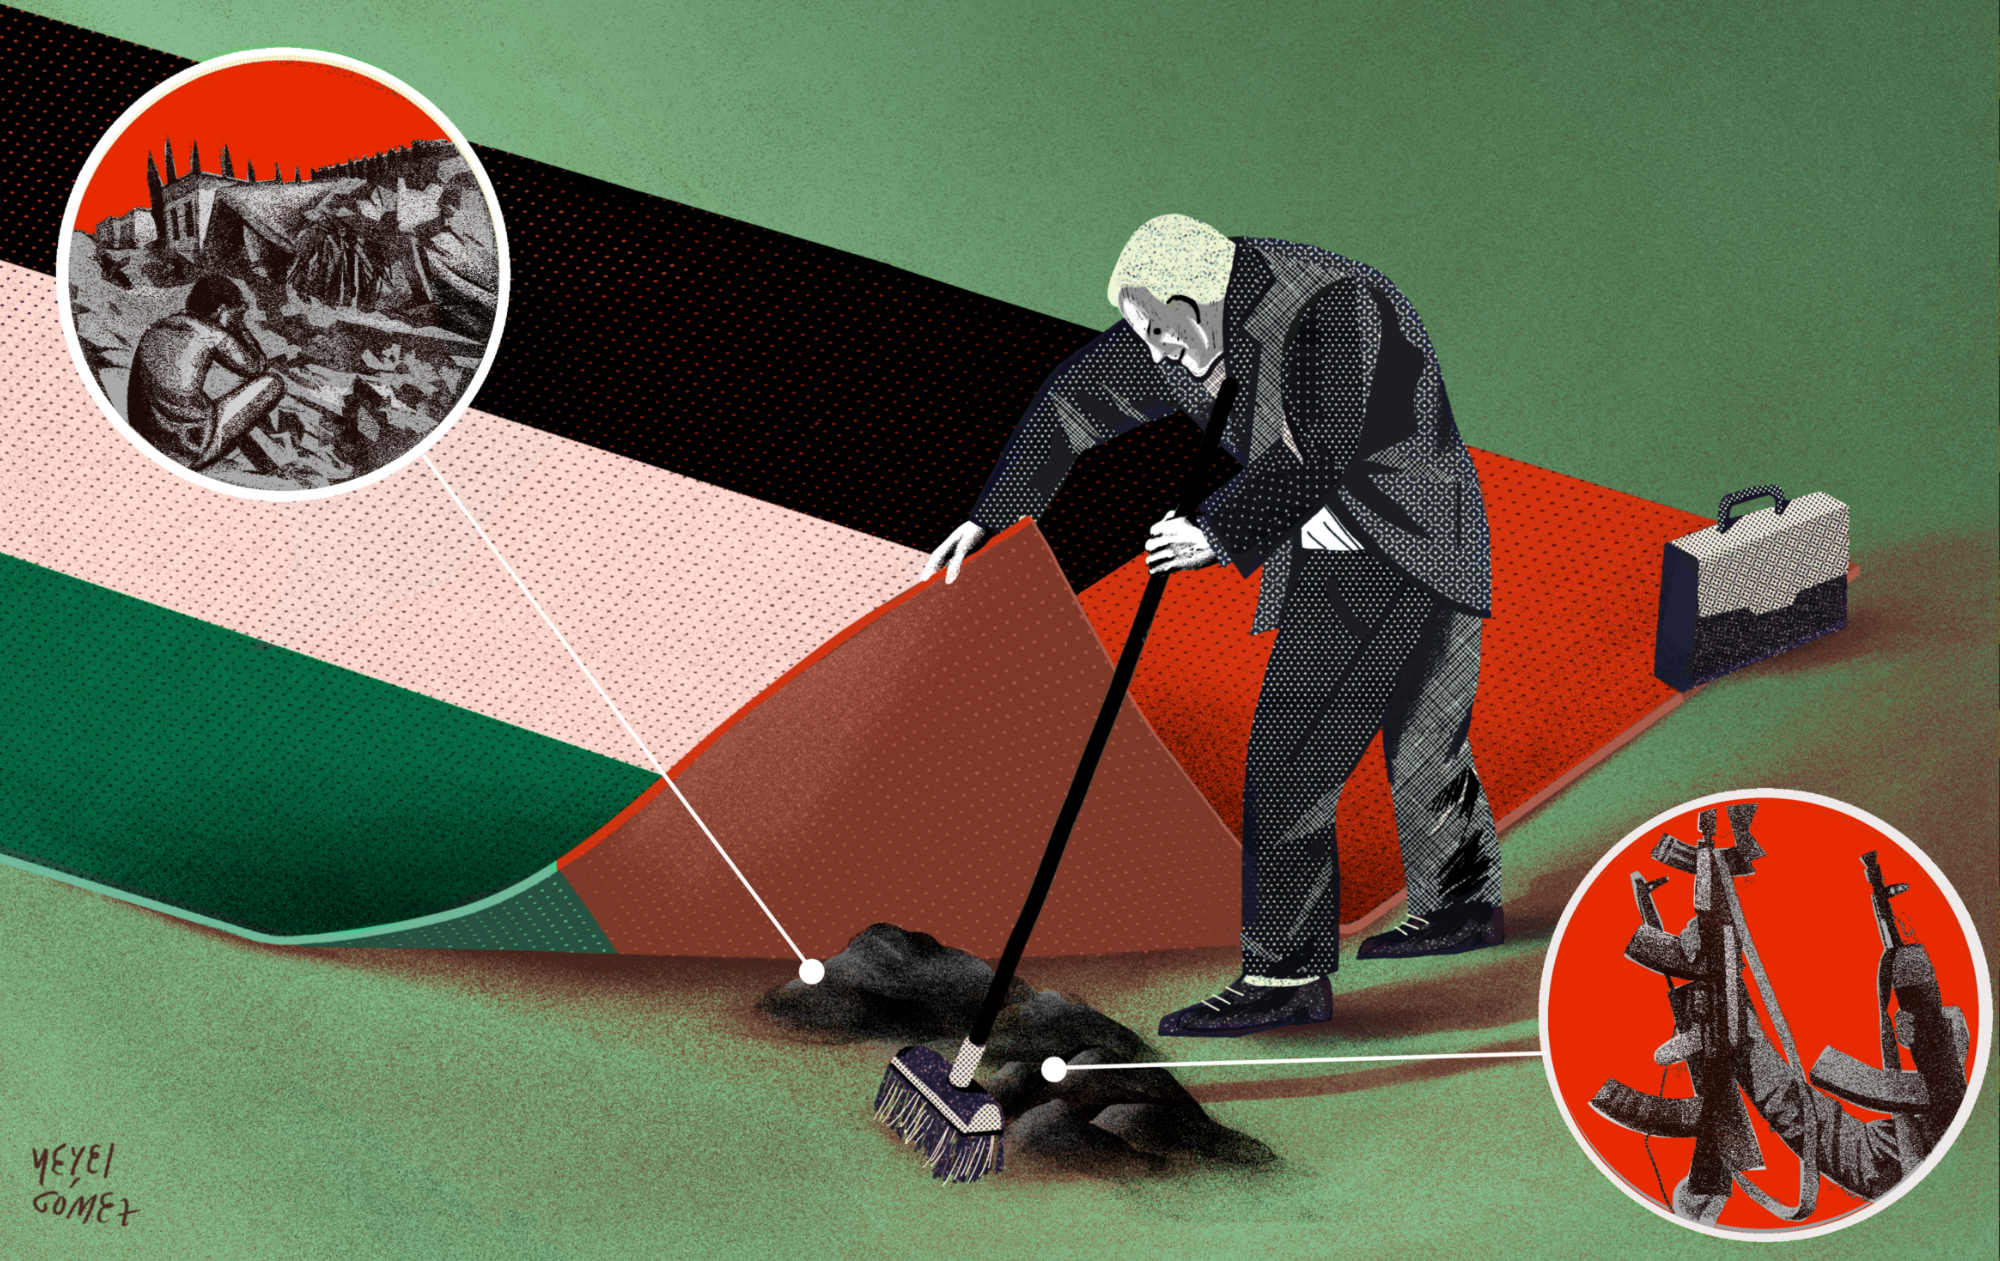 UAE flag as carpet with lobbyist sweeping images of 'war' and 'arms' underneath.